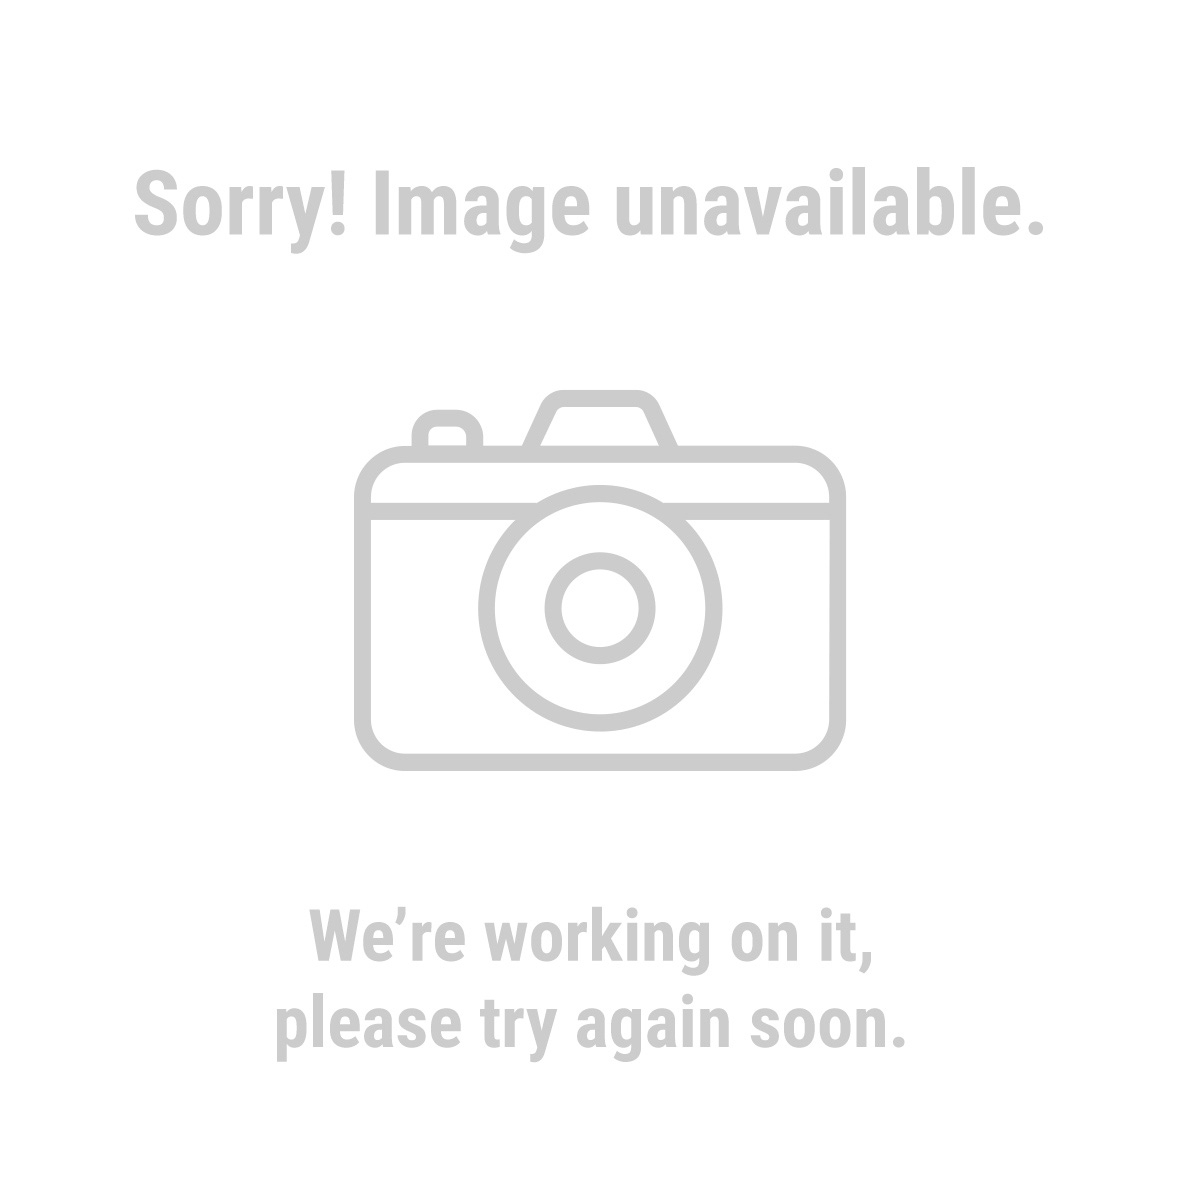 "Haul-Master® 92174 1265 Lb. Capacity 5 ft. 8-1/4"" x 3 ft. 9-1/4"" Heavy Duty Trailer with Ramp"